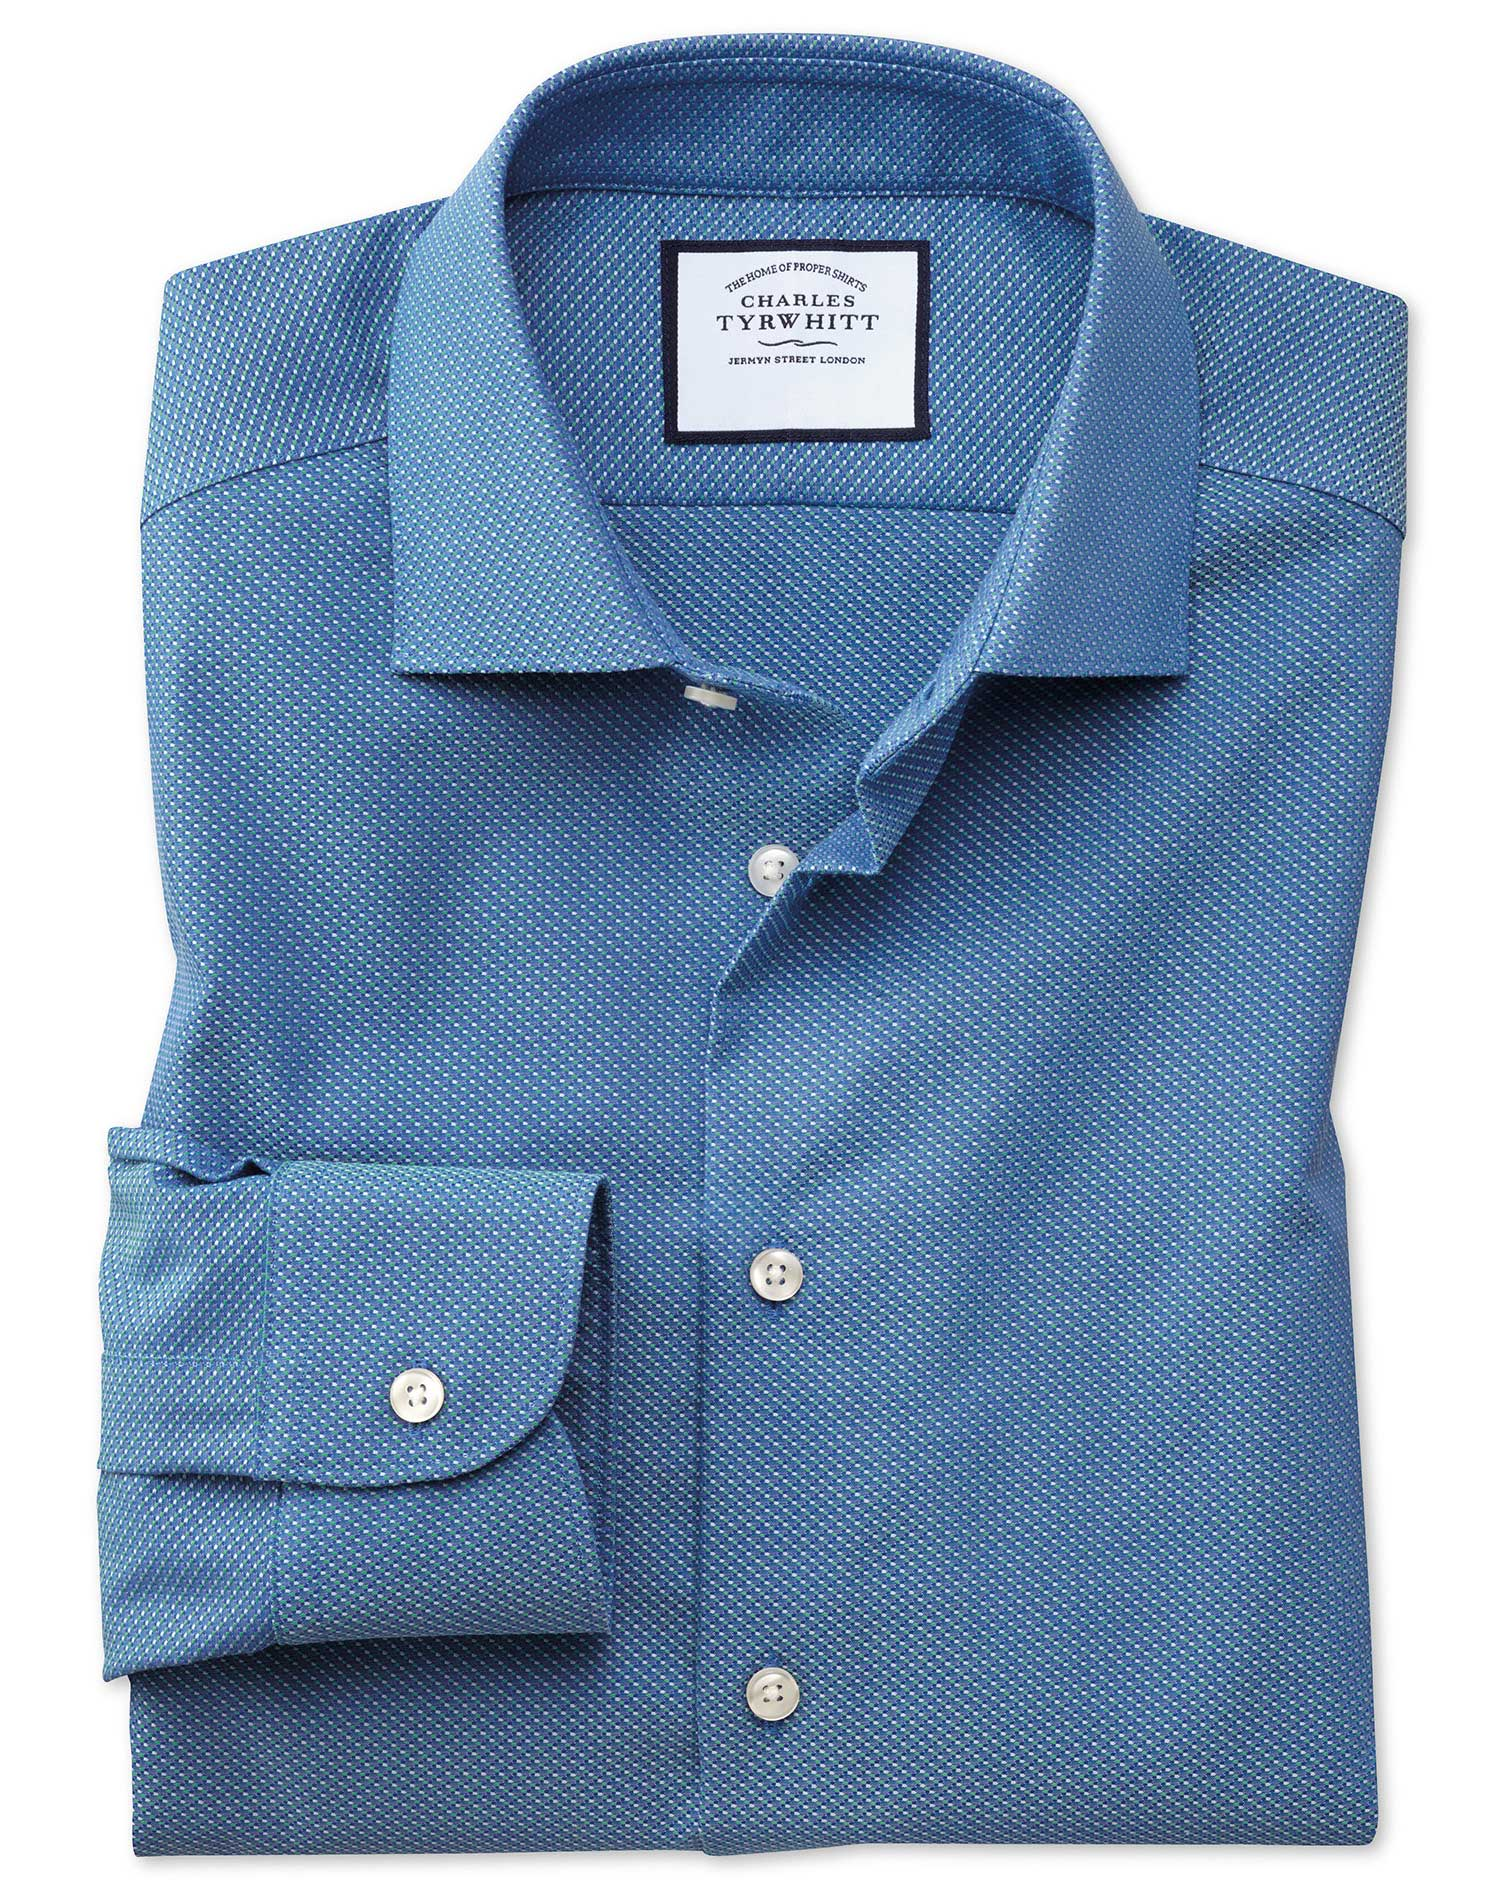 Extra Slim Fit Business Casual Non-Iron Blue and Teal Dash Dobby Cotton Formal Shirt Single Cuff Siz